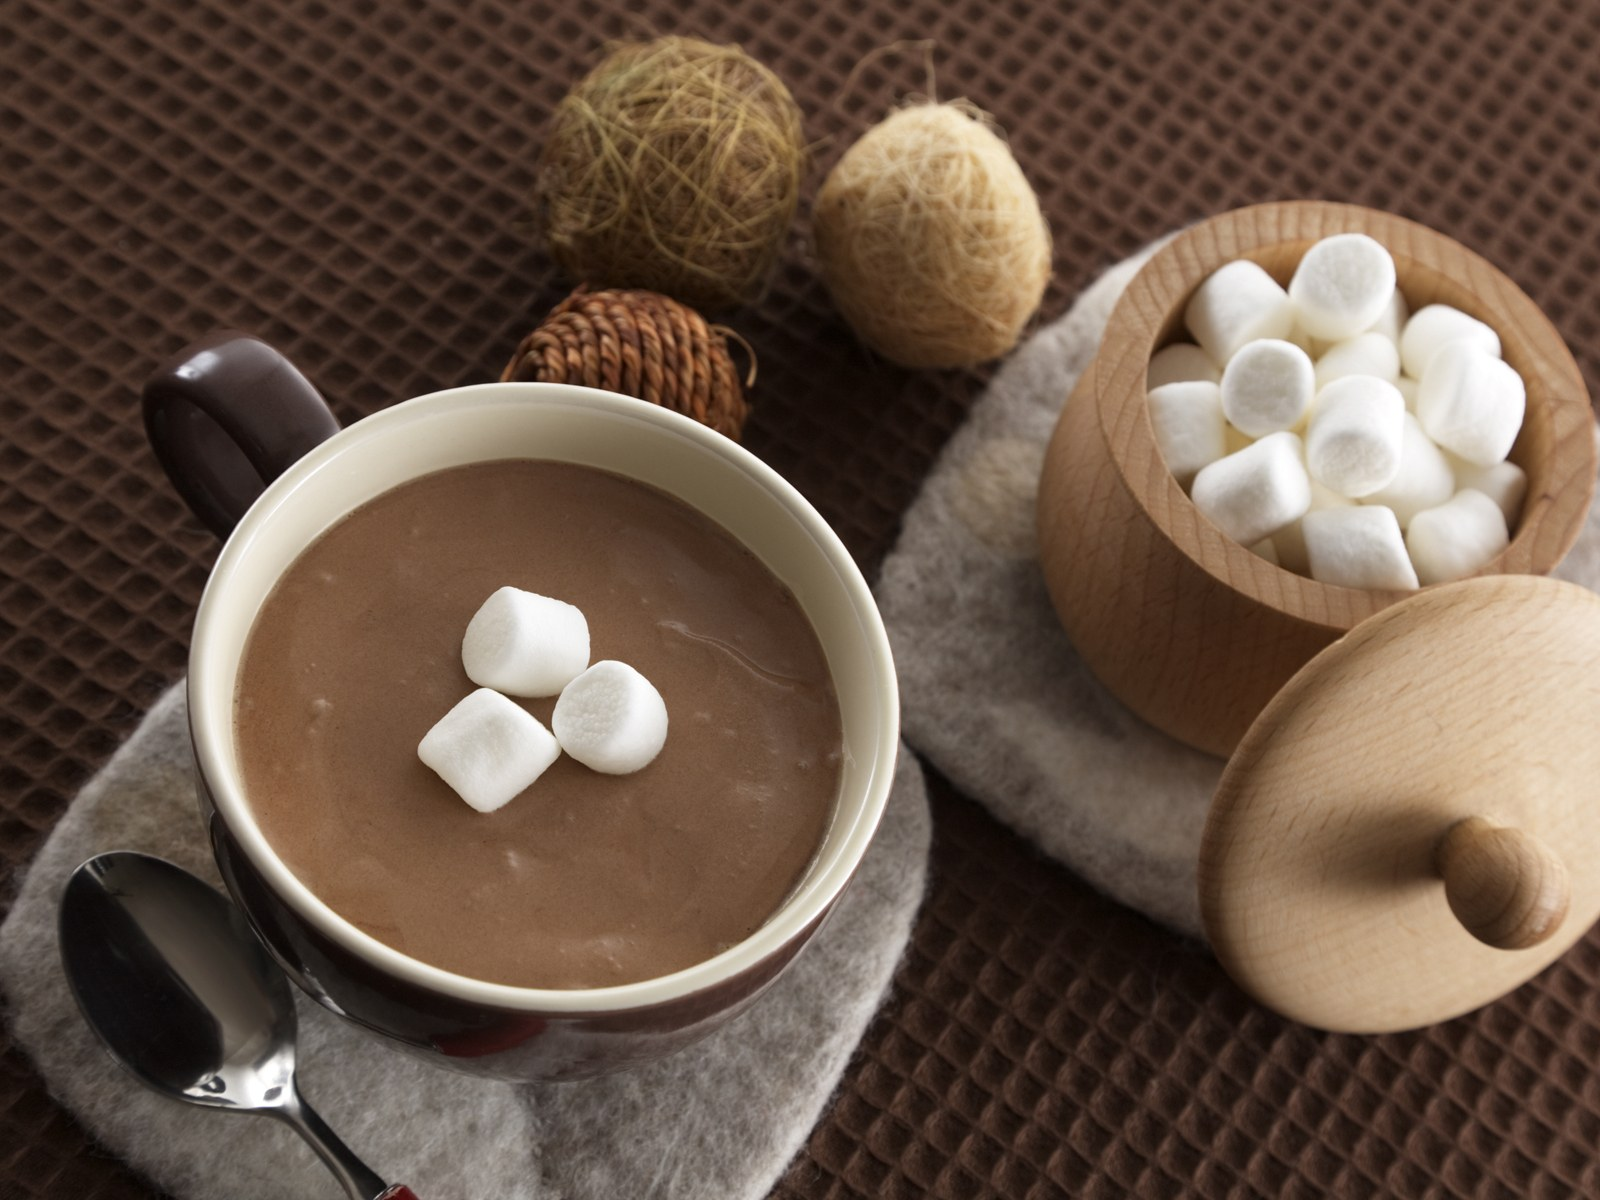 marshmallow pictures 38870